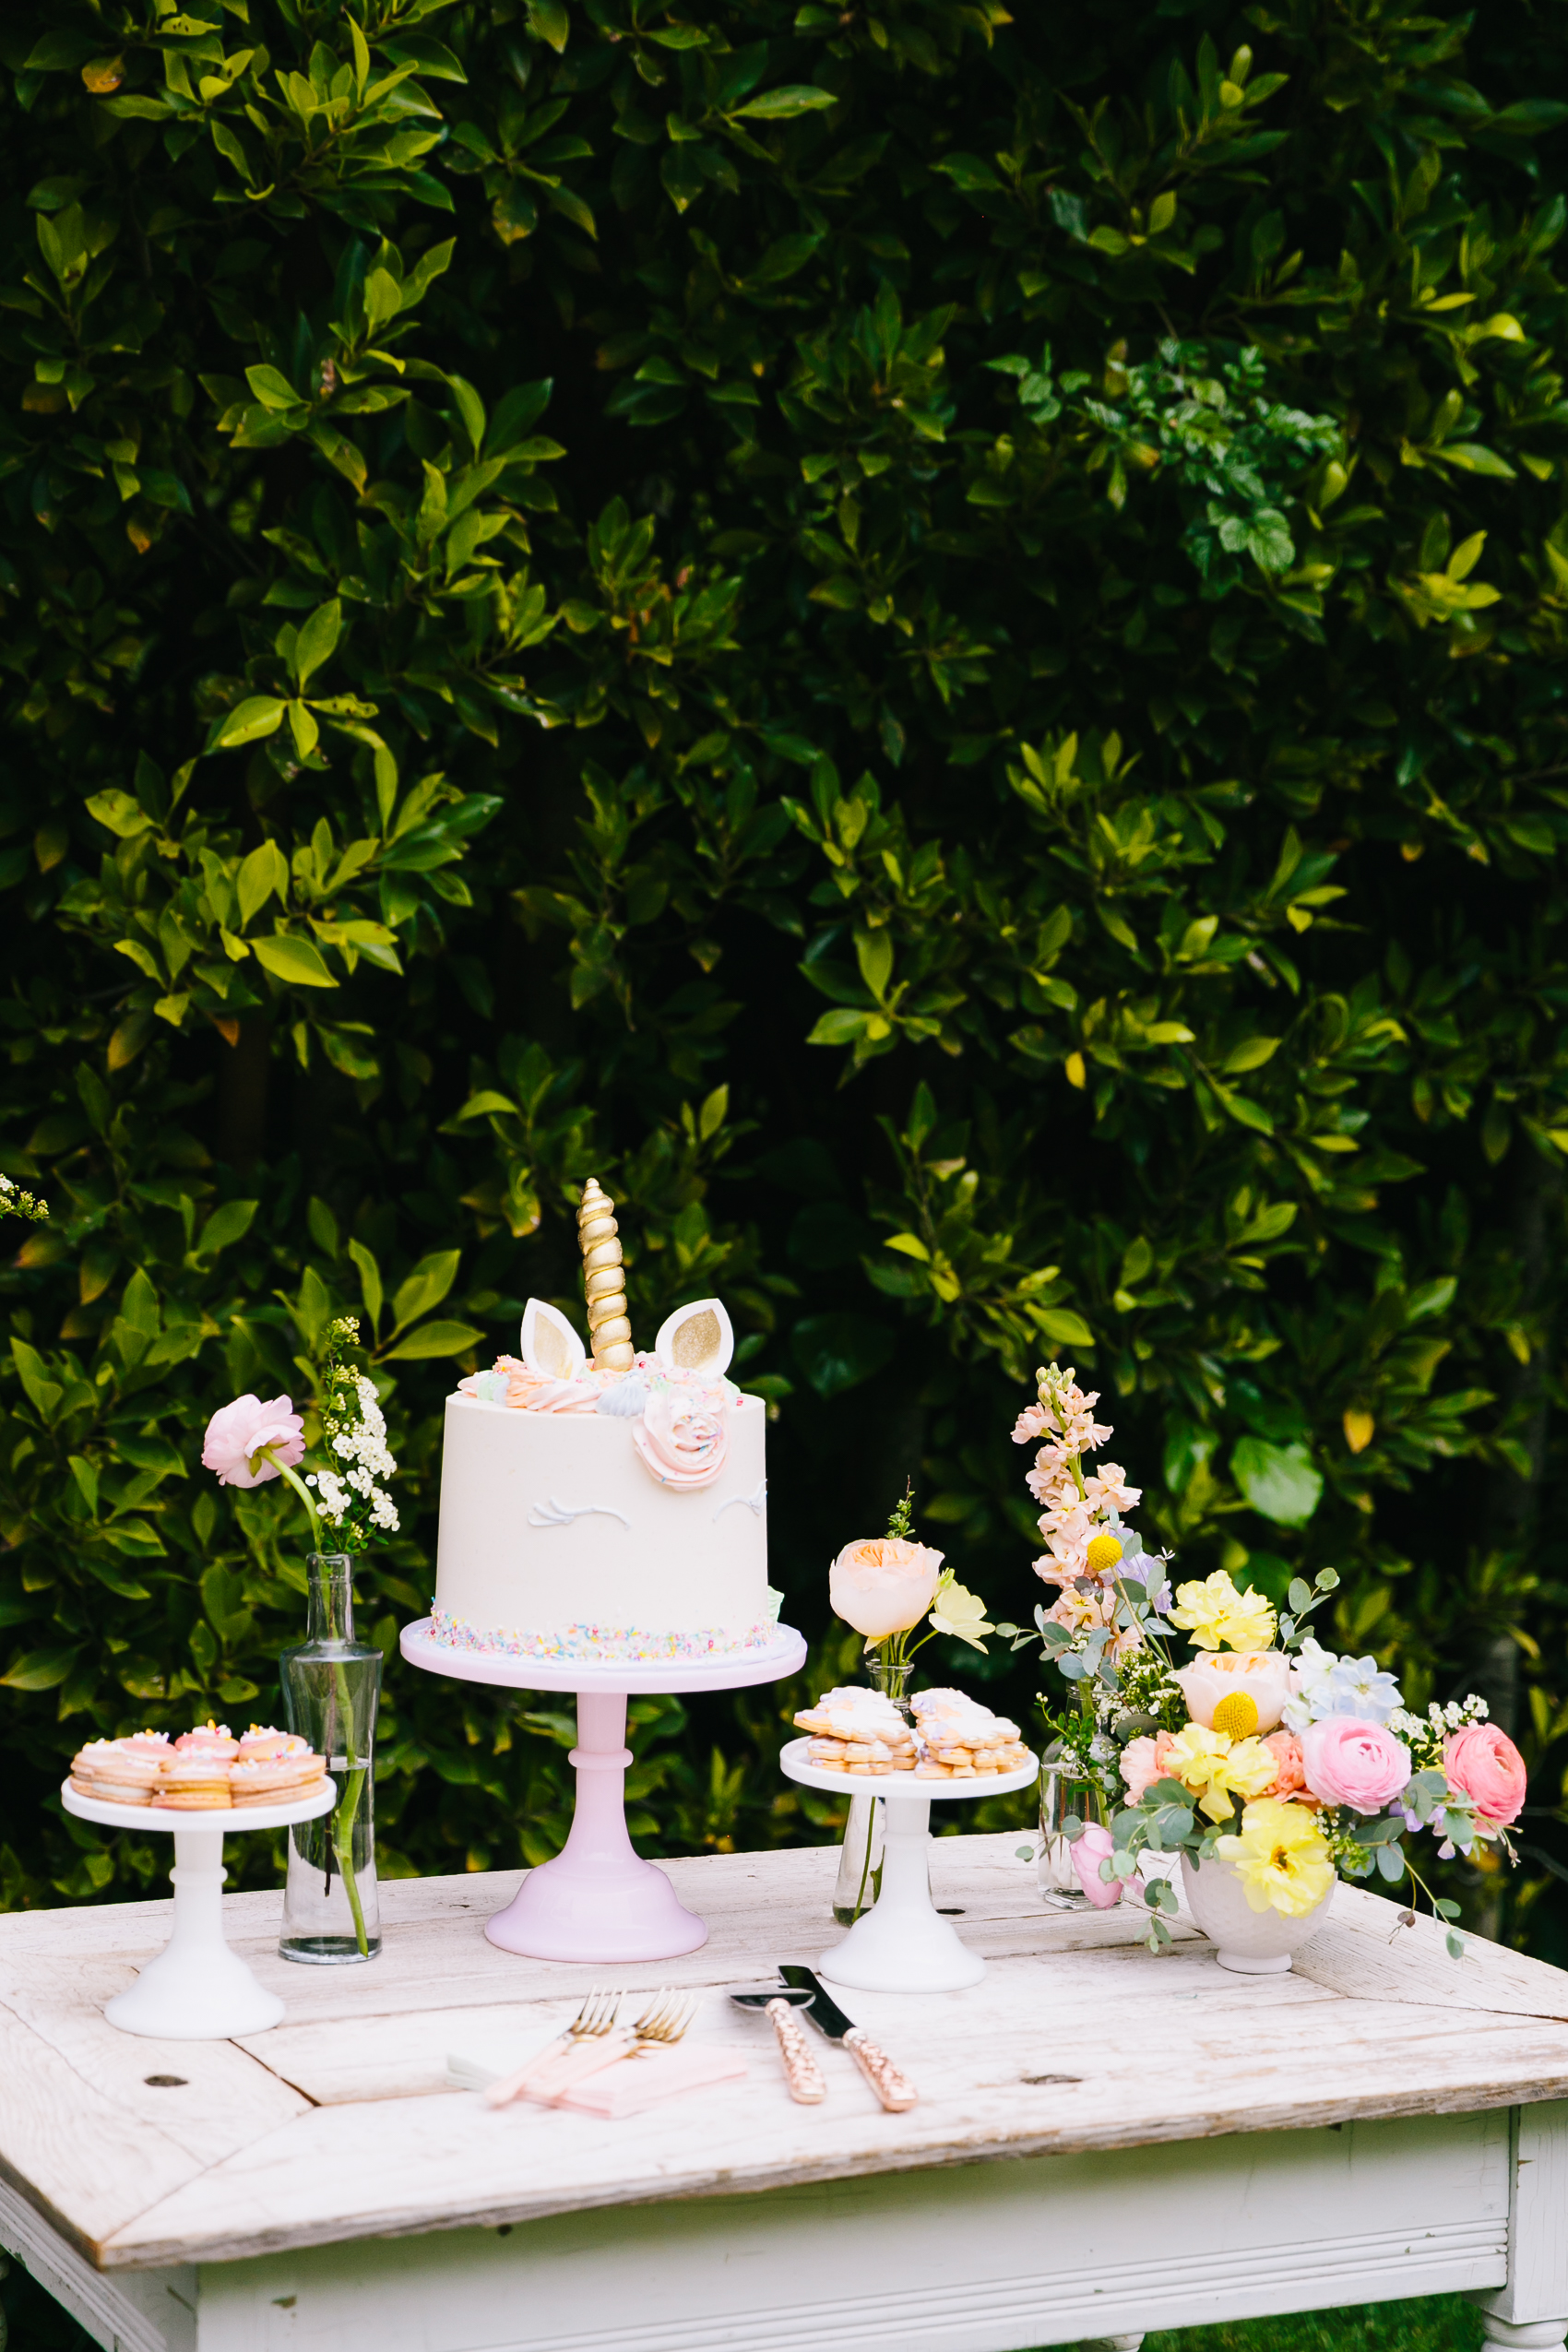 Los_Angeles_Family_Photographer_Luxury_Childrens_Party_Beverly_Hills_Unicorn_Birthday_Party-0968.jpg